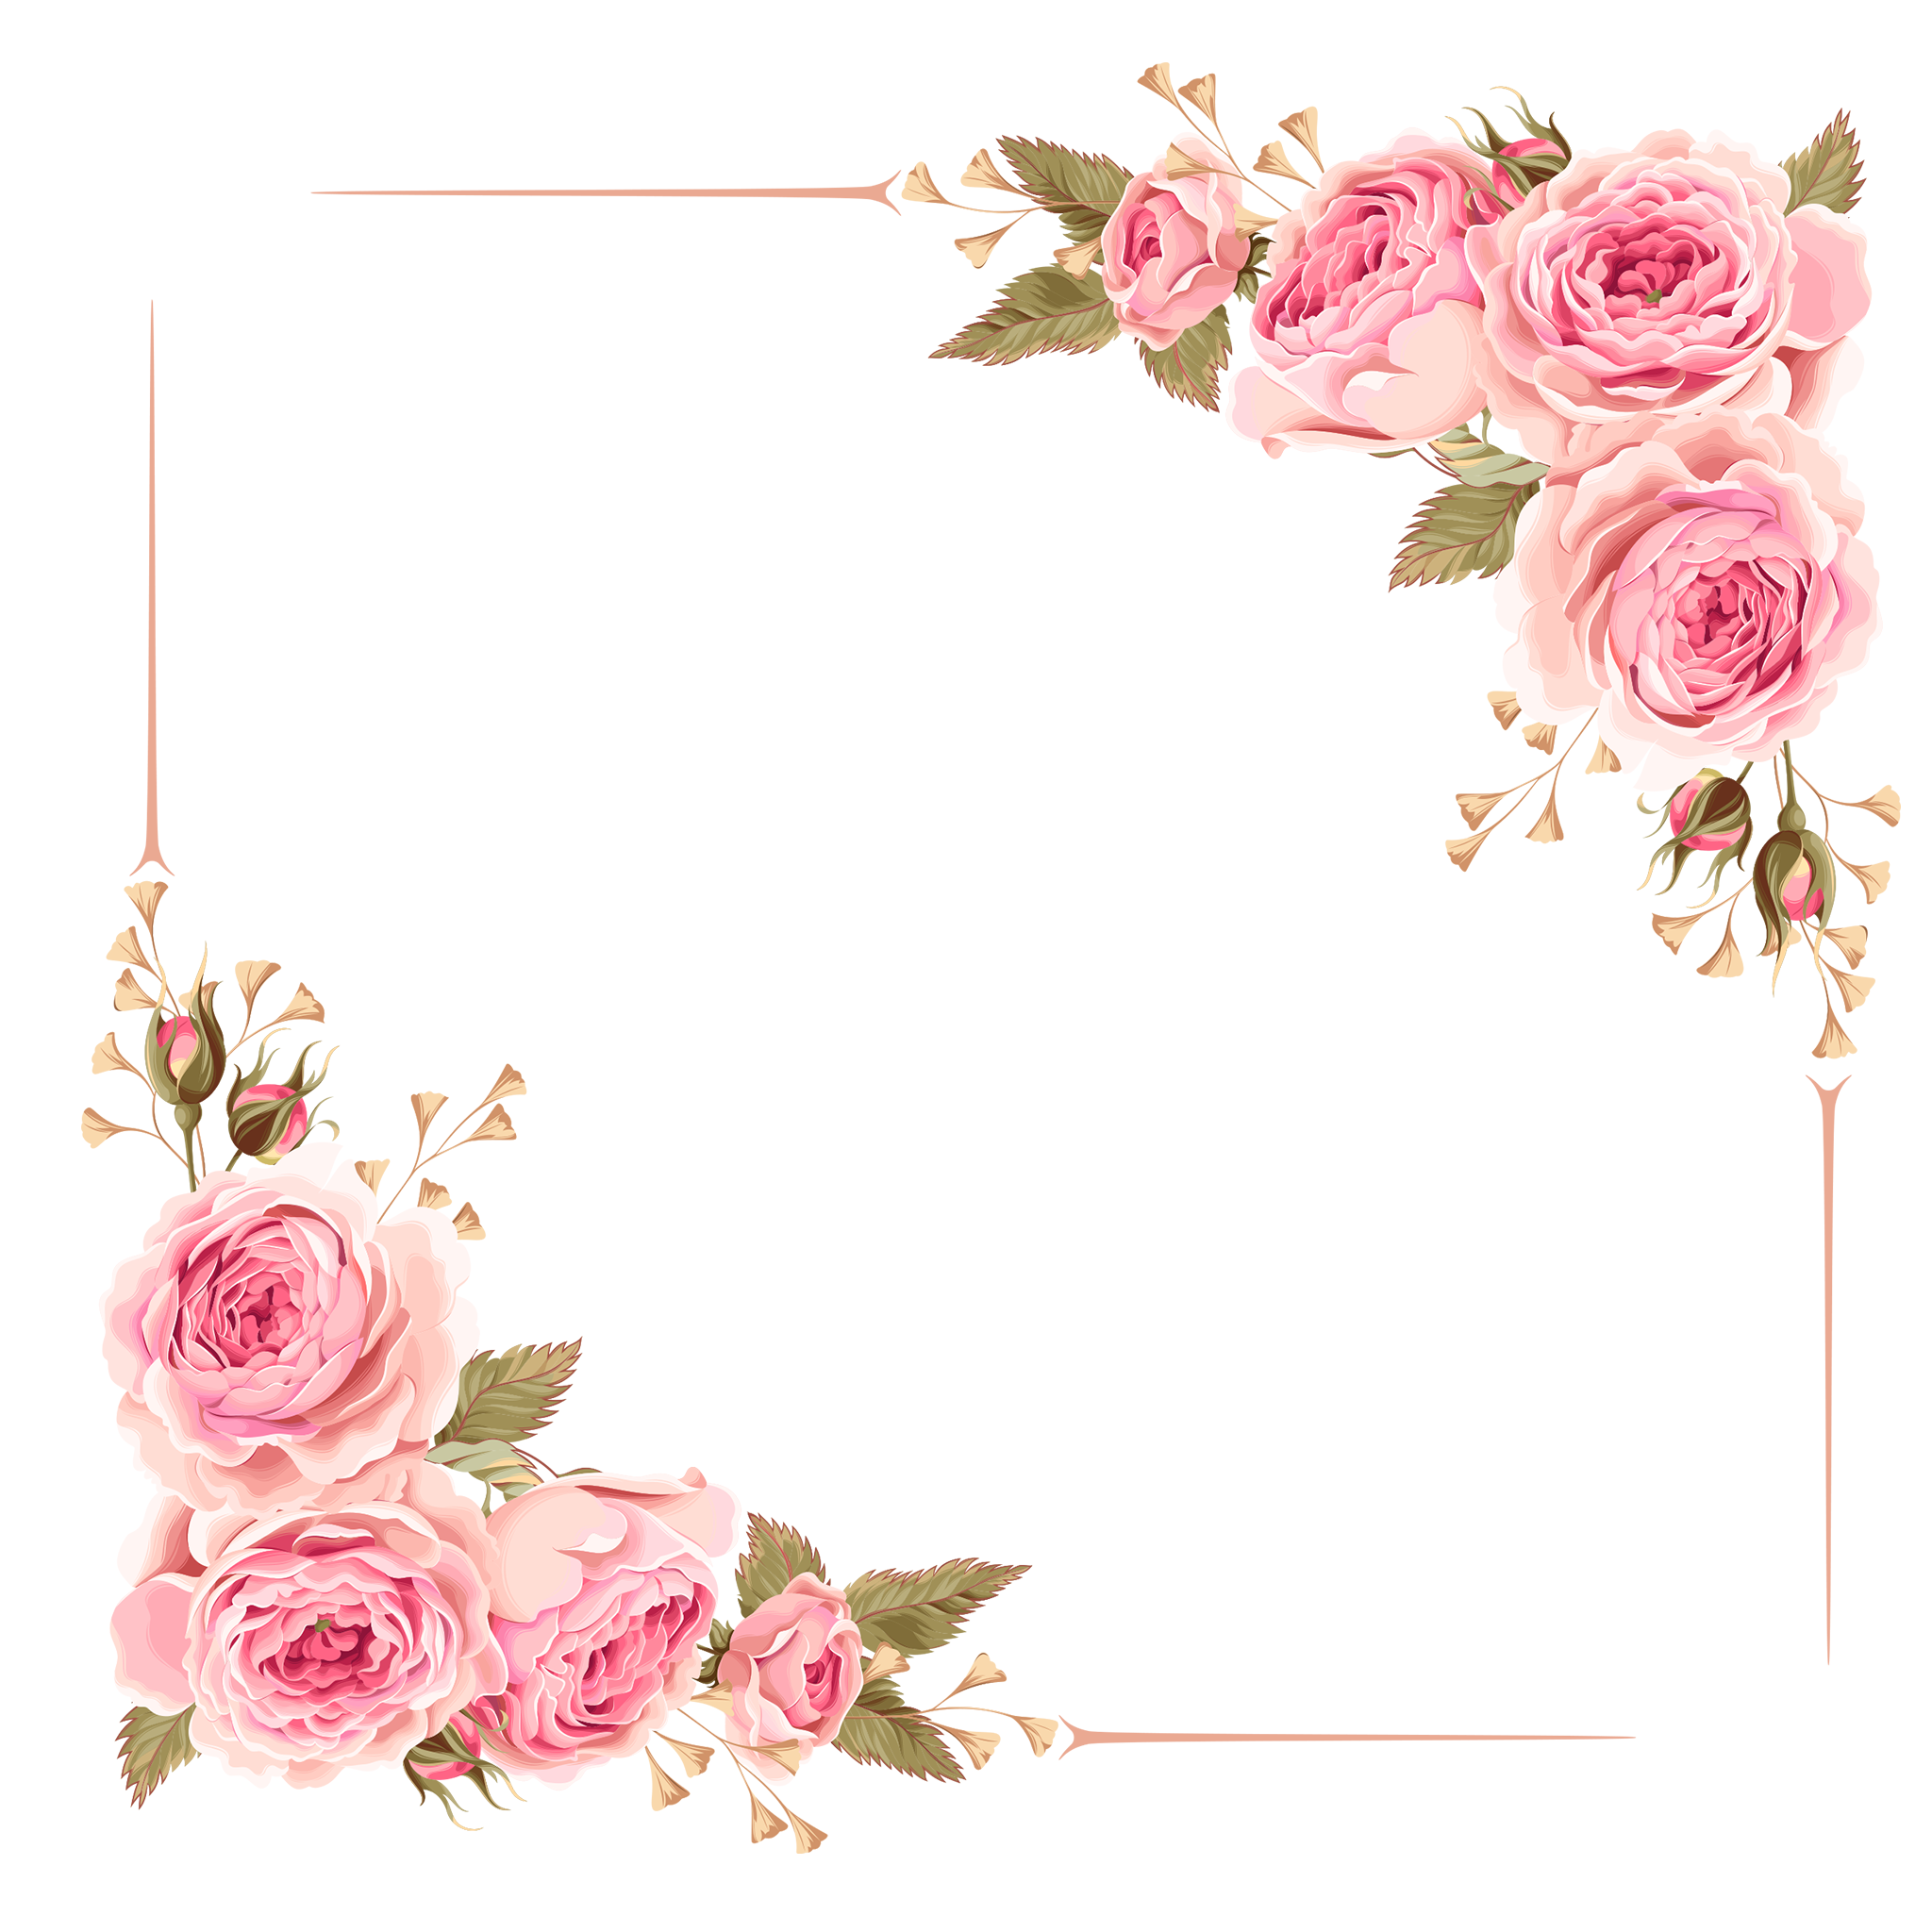 Free png clipart download clip transparent Download Free png Flower Border, Flower Clipart, Frame, Border PNG ... clip transparent